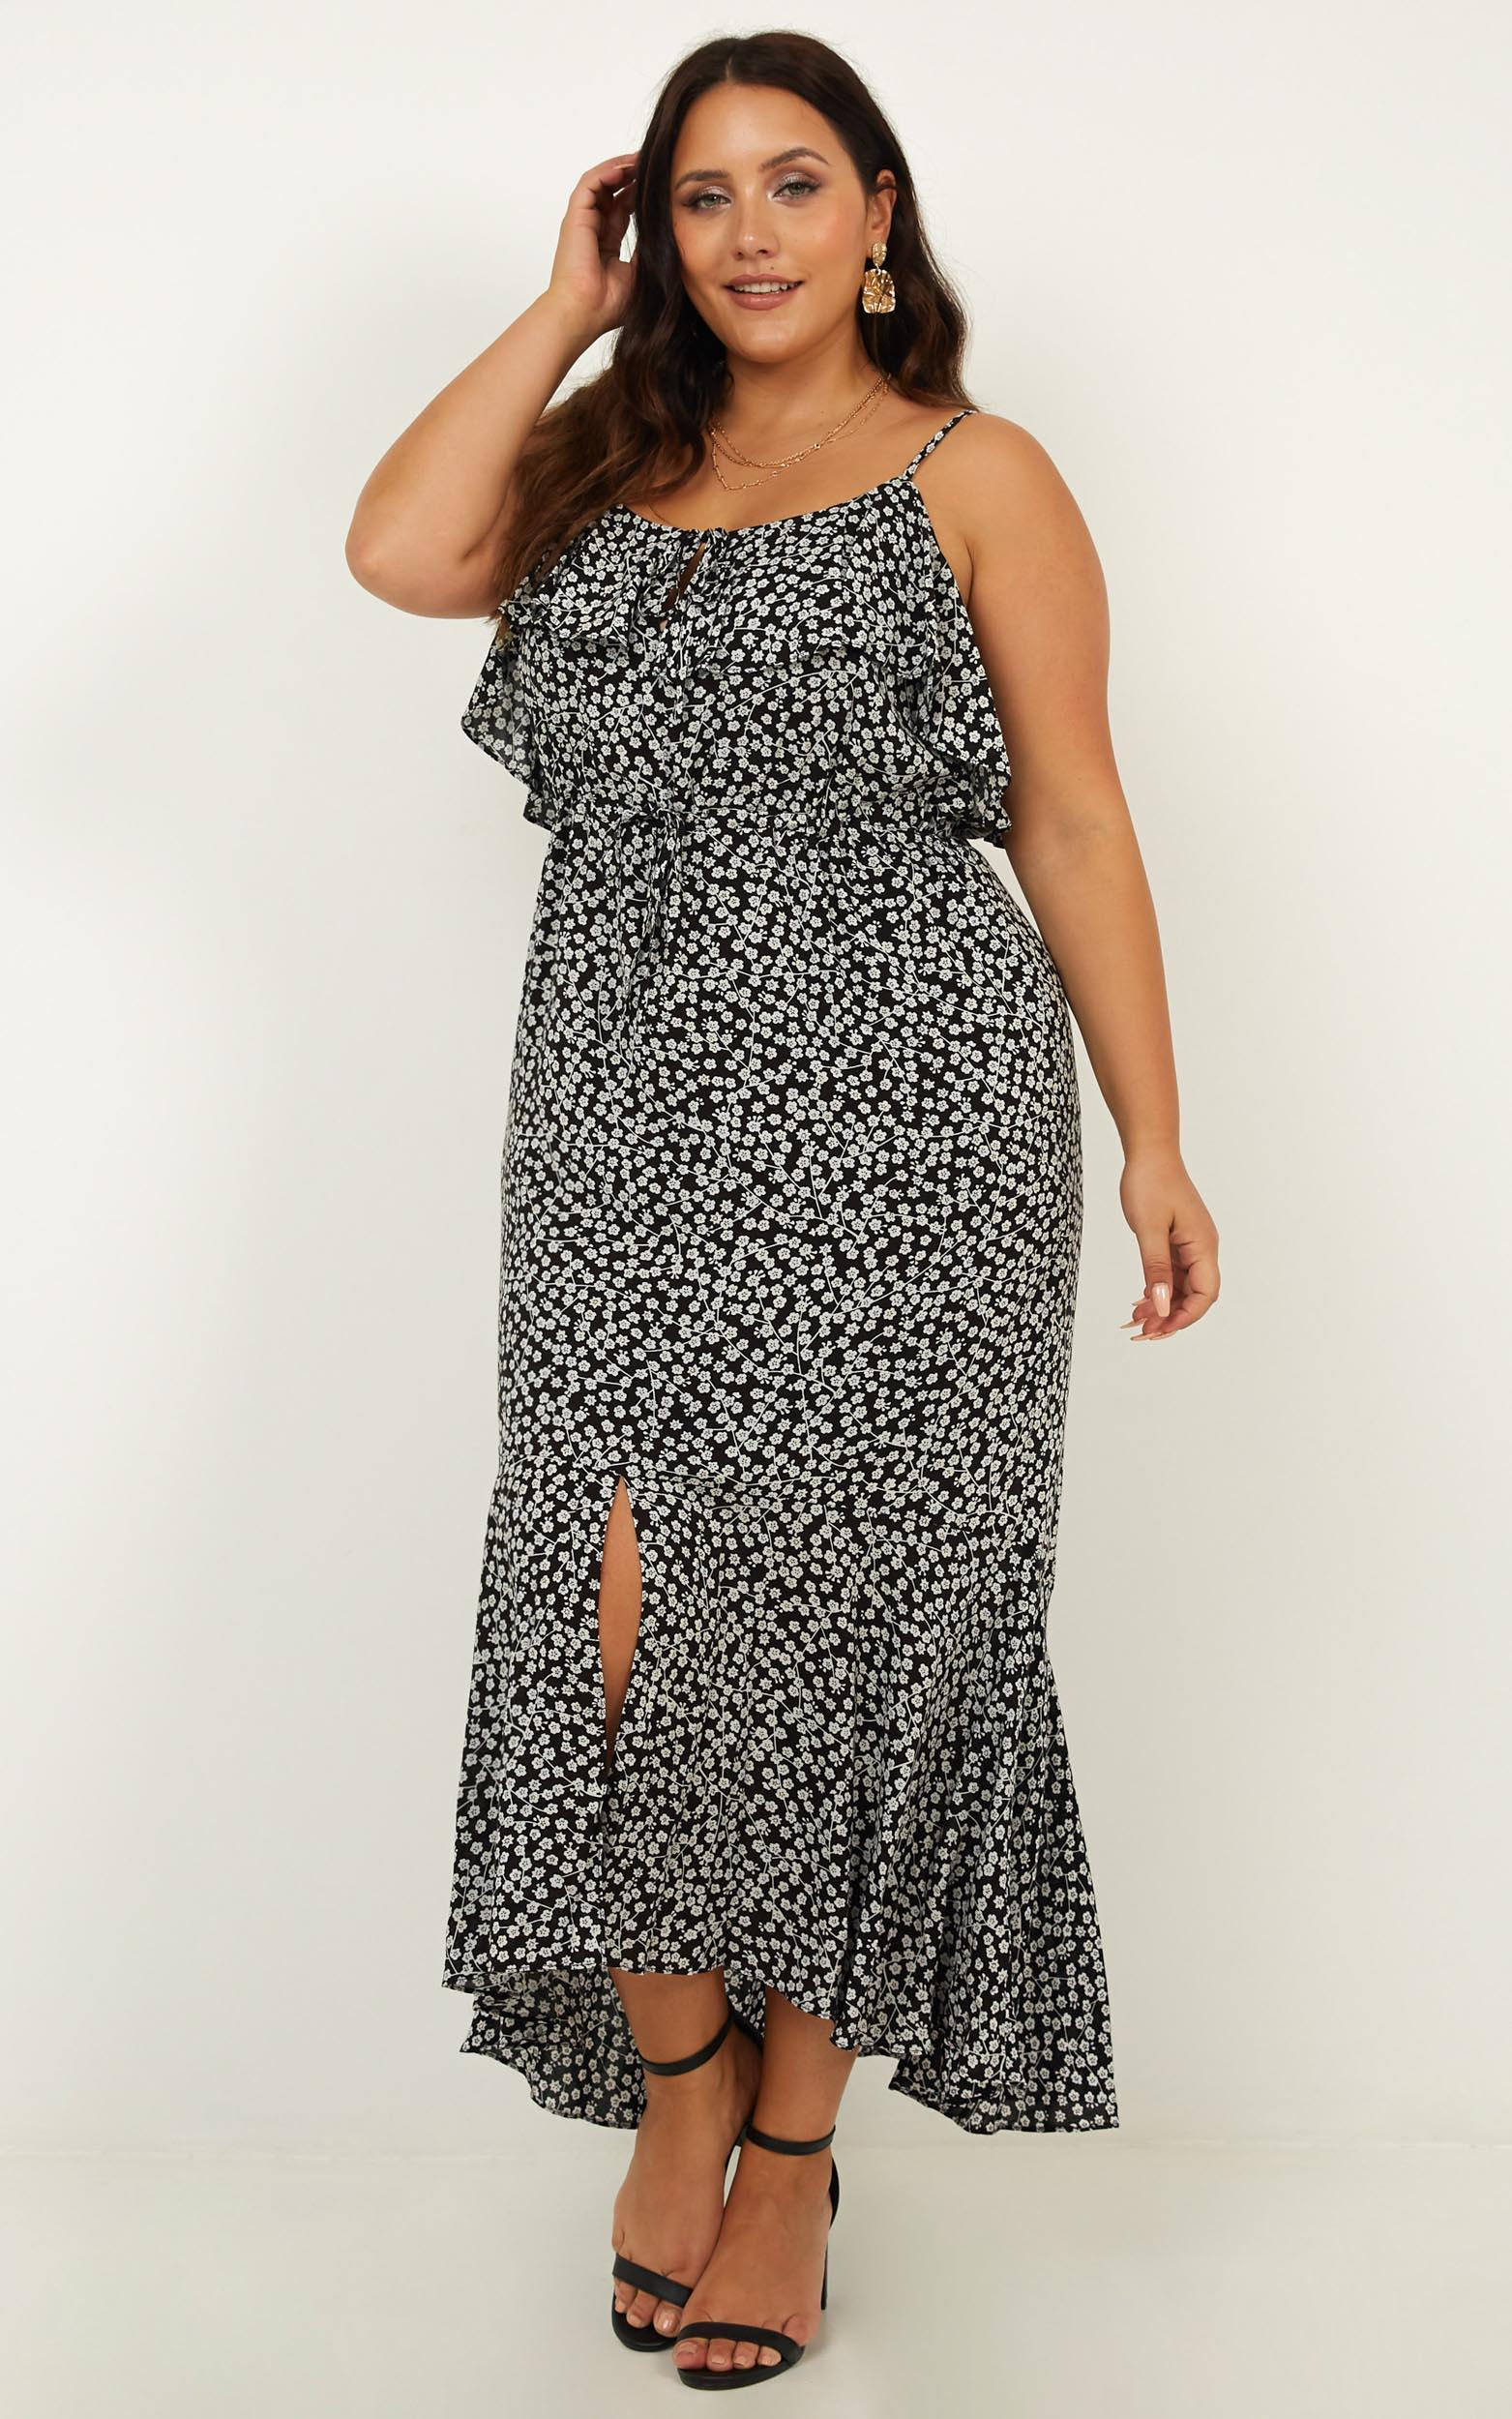 Chasing butterflies dress in black floral - 18 (XXXL), Black, hi-res image number null